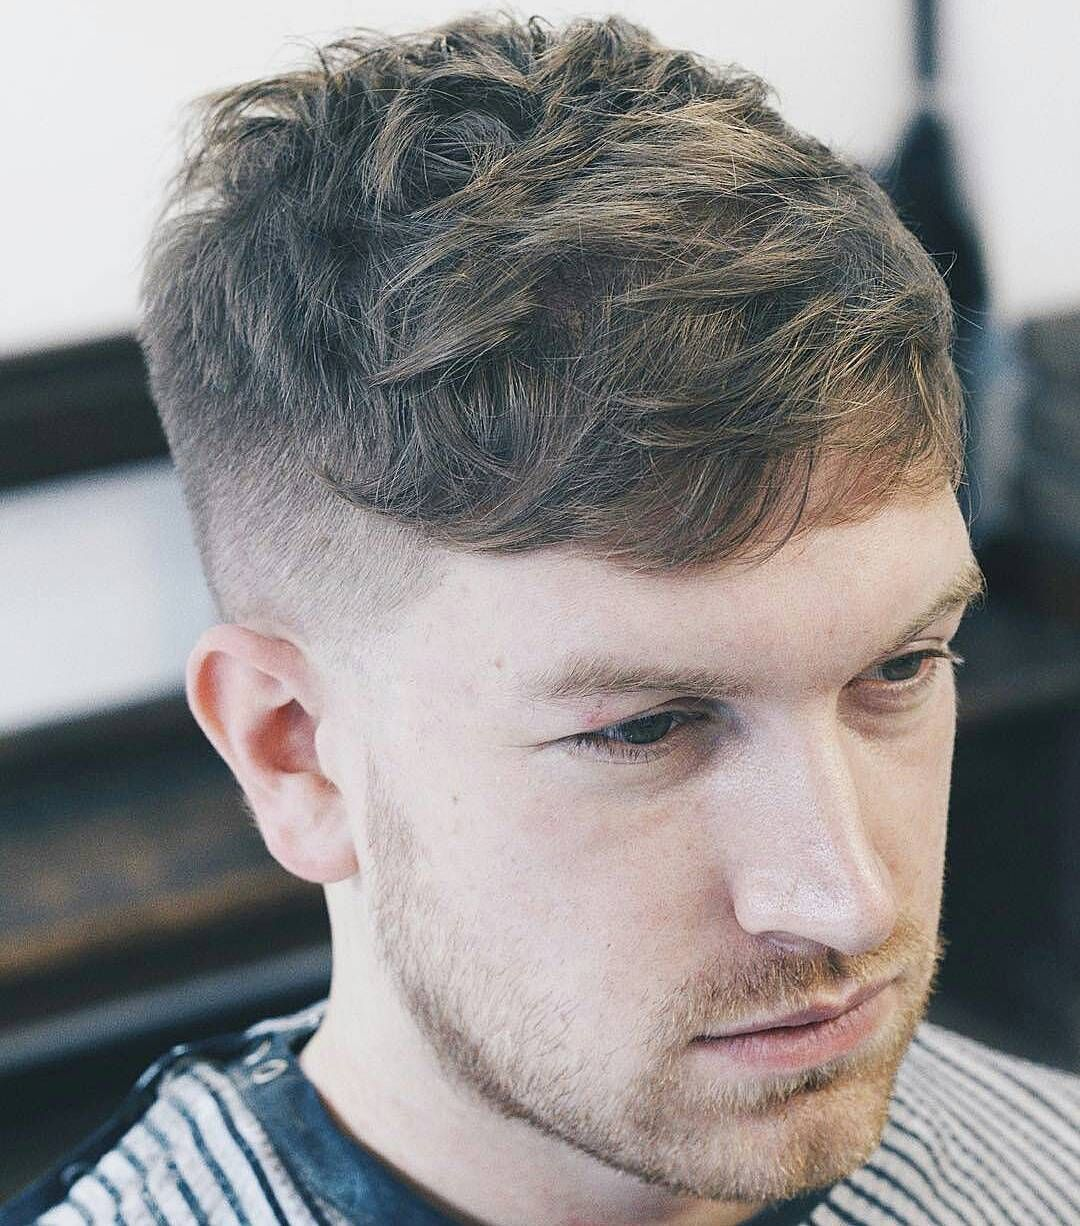 Short Hairstyles For Men 2015 Awesome 45 Trendy Short Haircuts For Men Be Yourself Check More